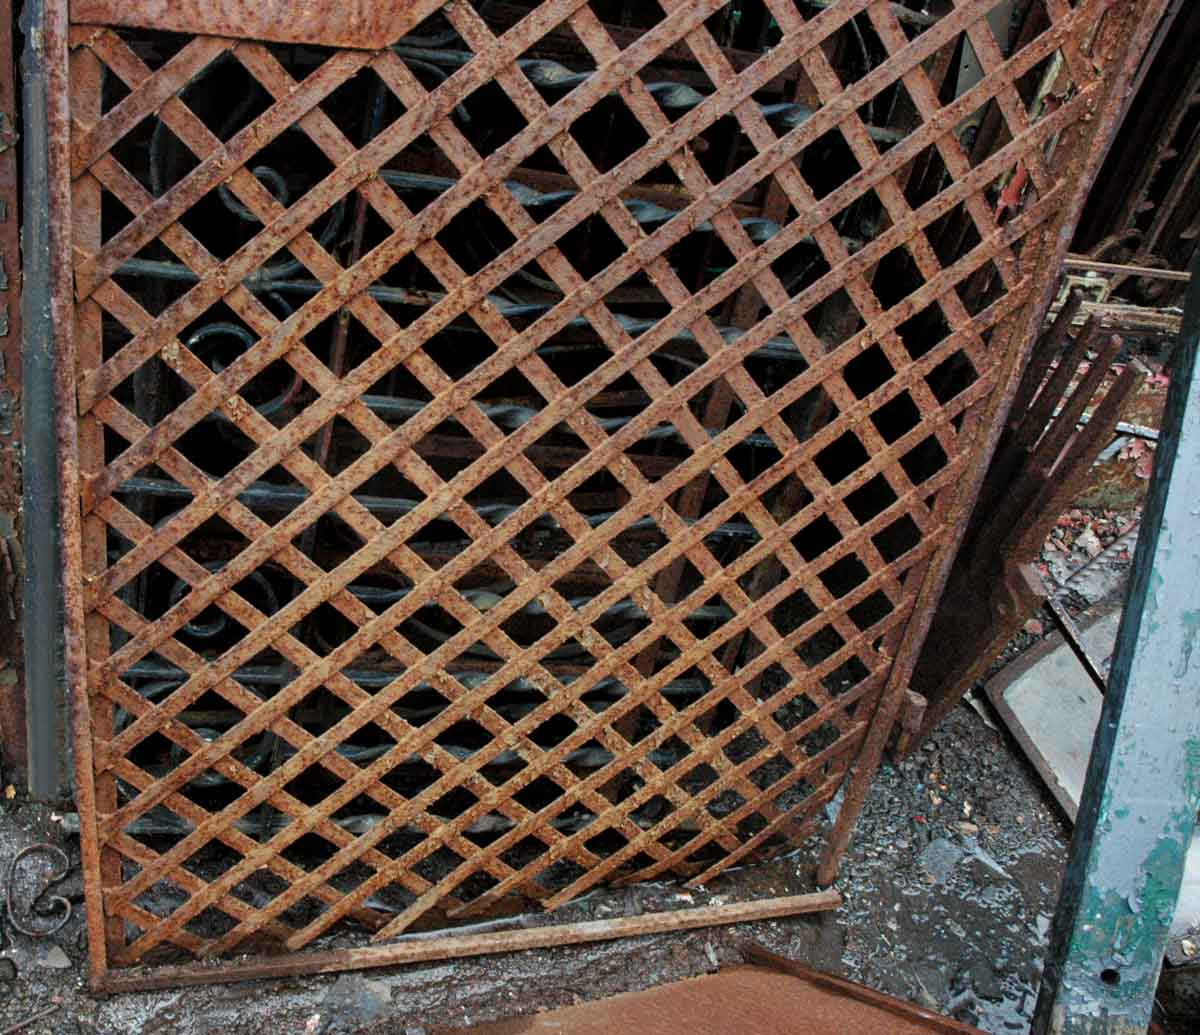 Antique Wrought Iron Gate or Woven Lattice Garden Trellis | Olde ...